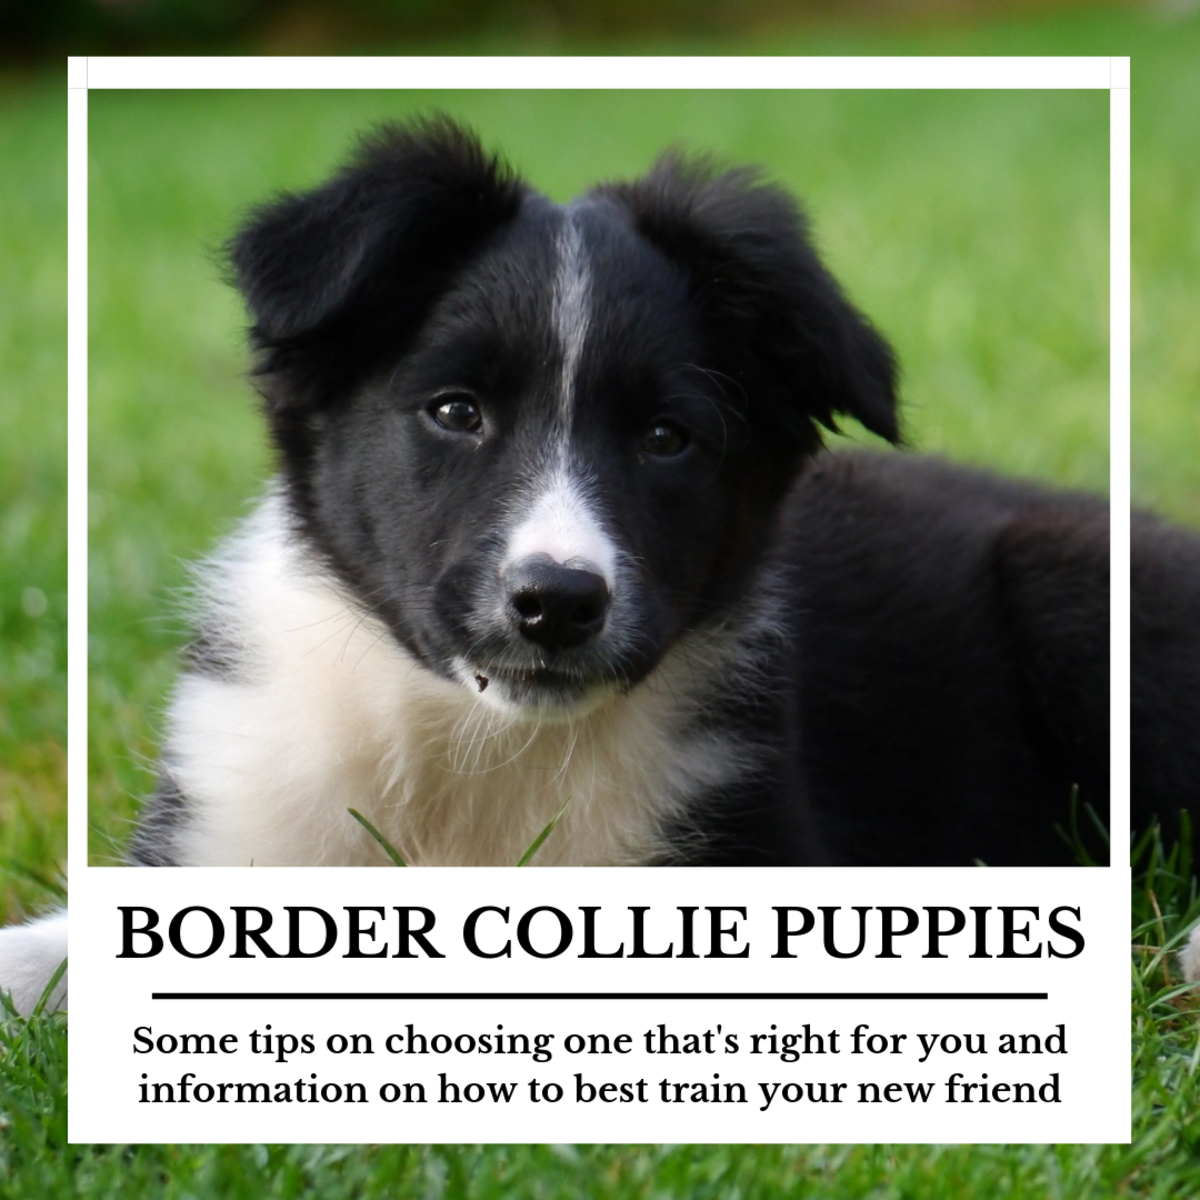 This article will provide you with plenty of information to help you choose a border collie that's right for you, as well as provide guidance on how to best train it.